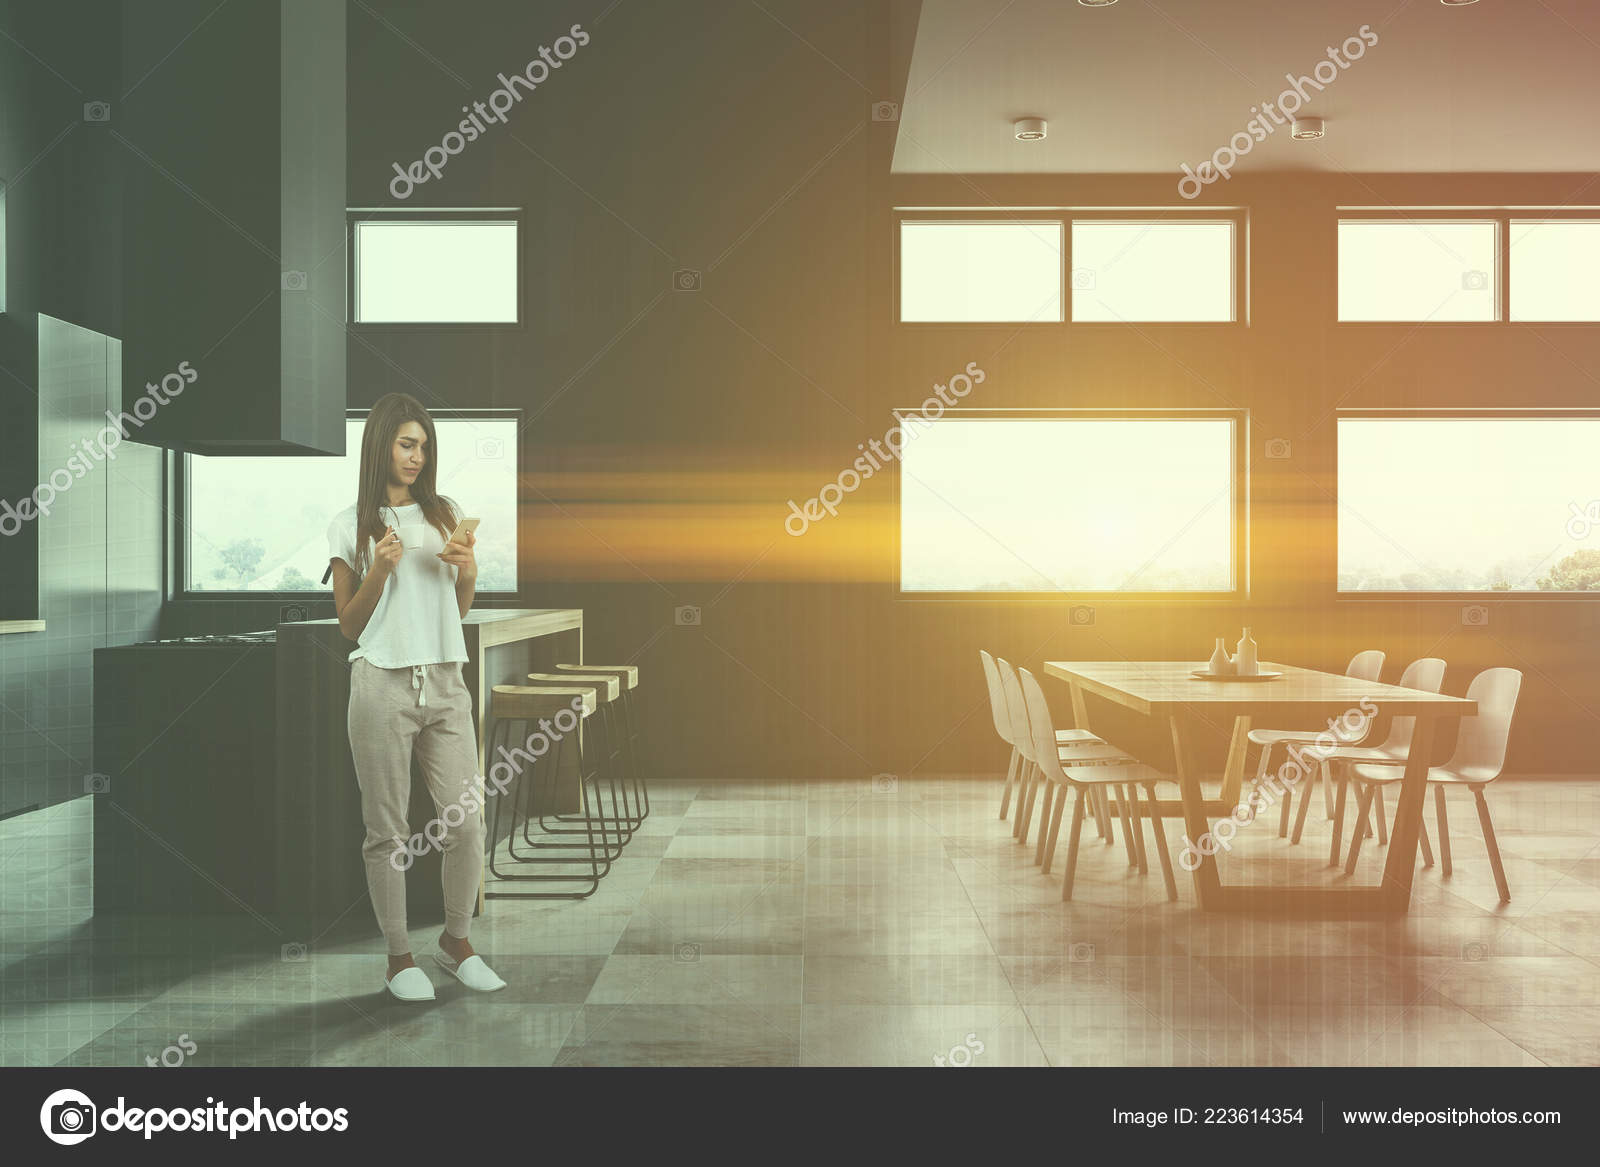 Depositphotos_223614354 Stock Photo Woman Modern Kitchen Dining Room